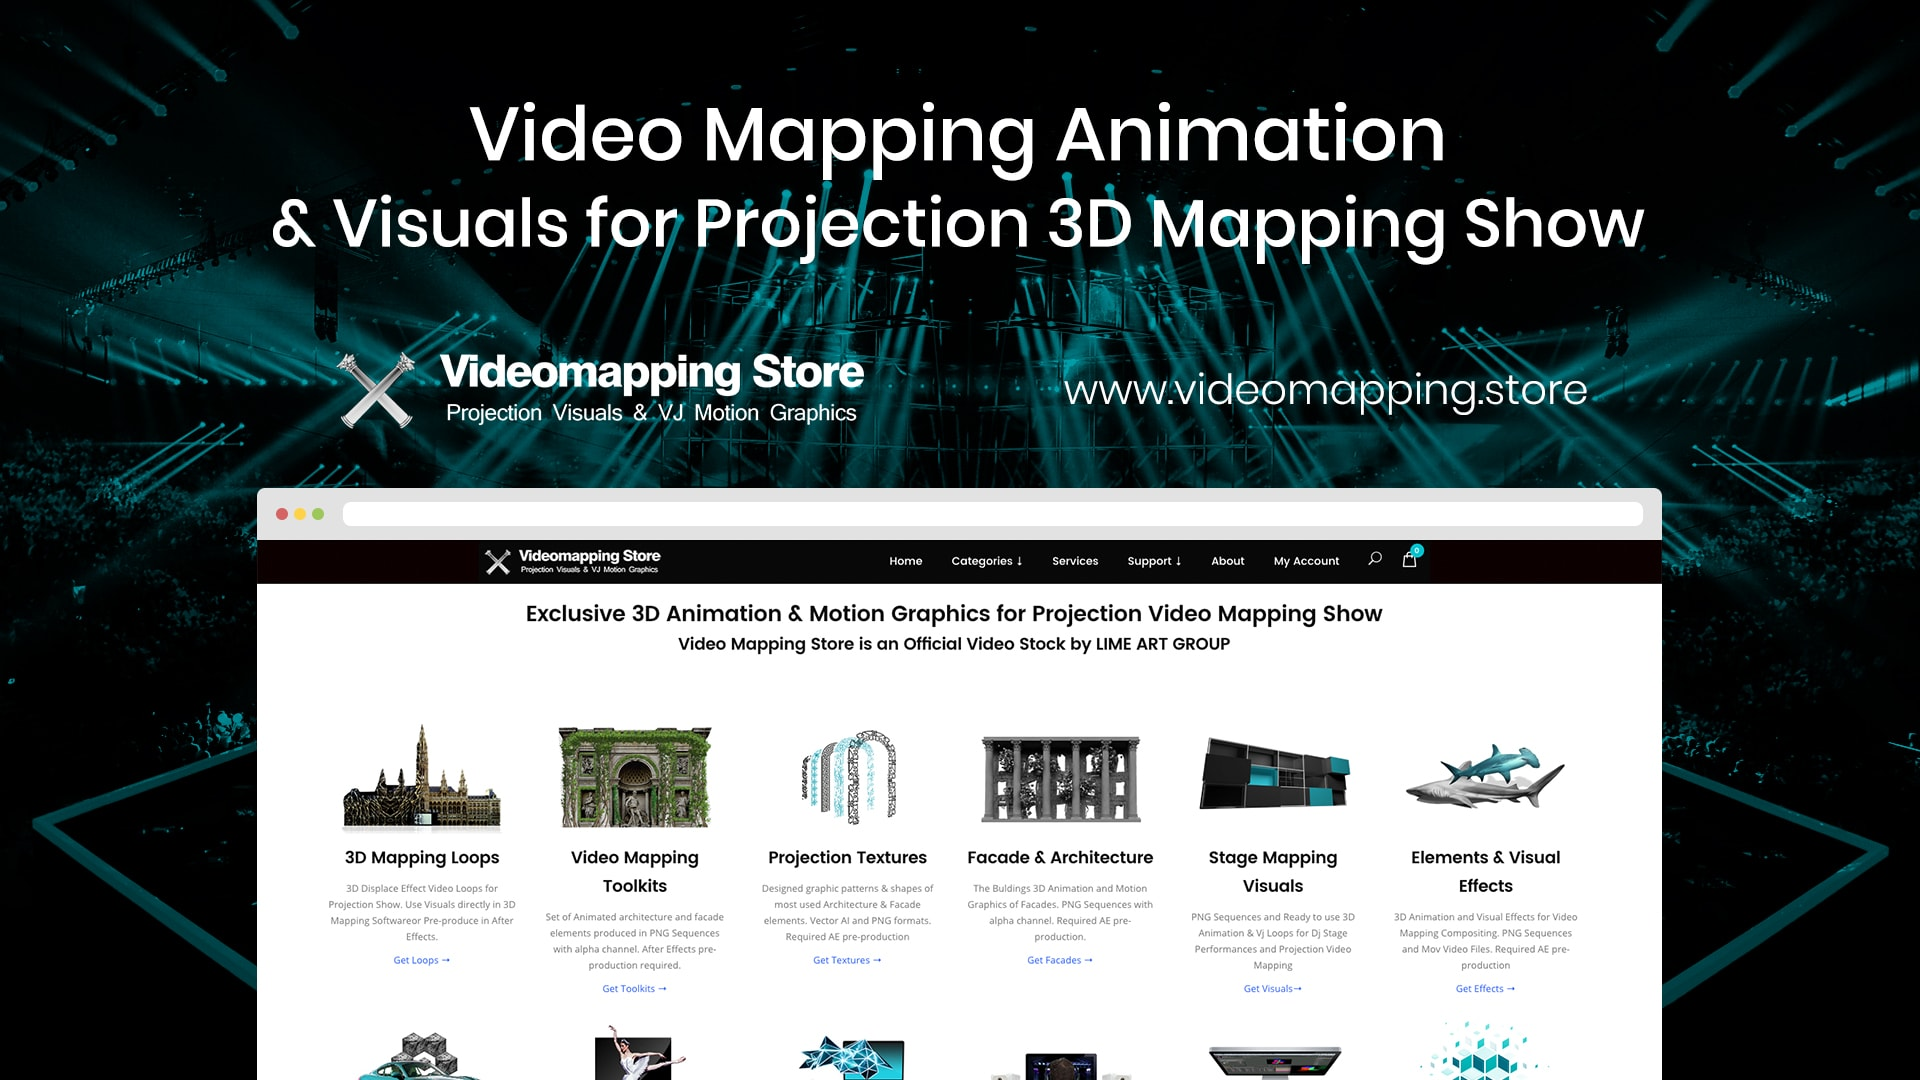 Video Mapping Store - Visual content for Projection Mapping Show